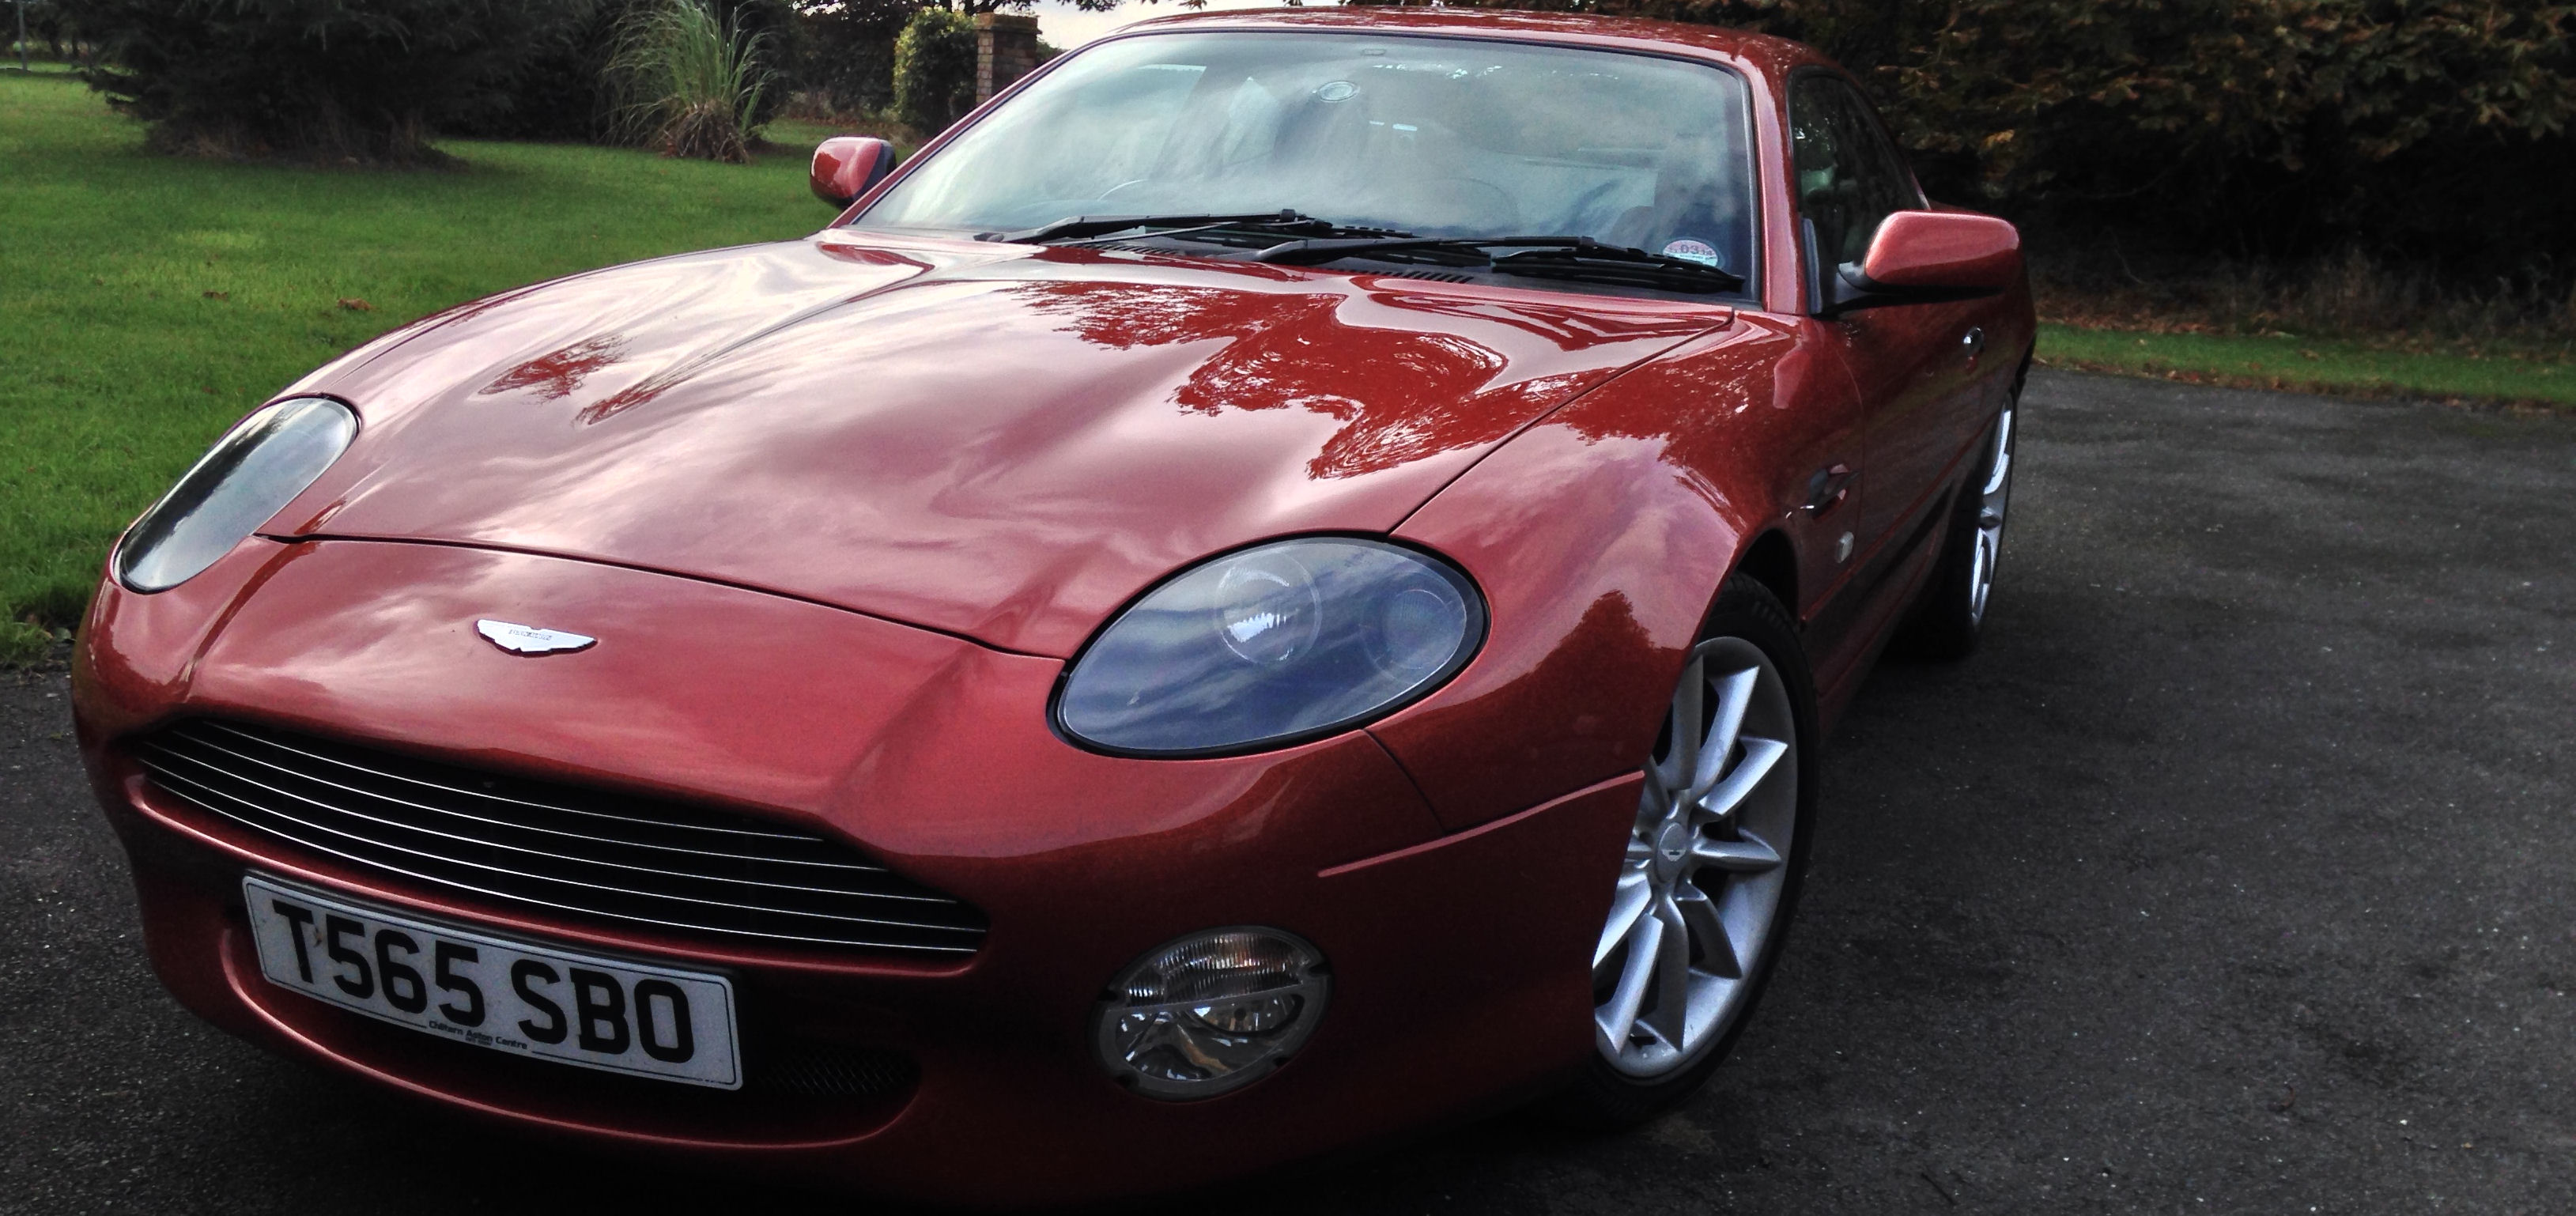 red-aston-martin-db7